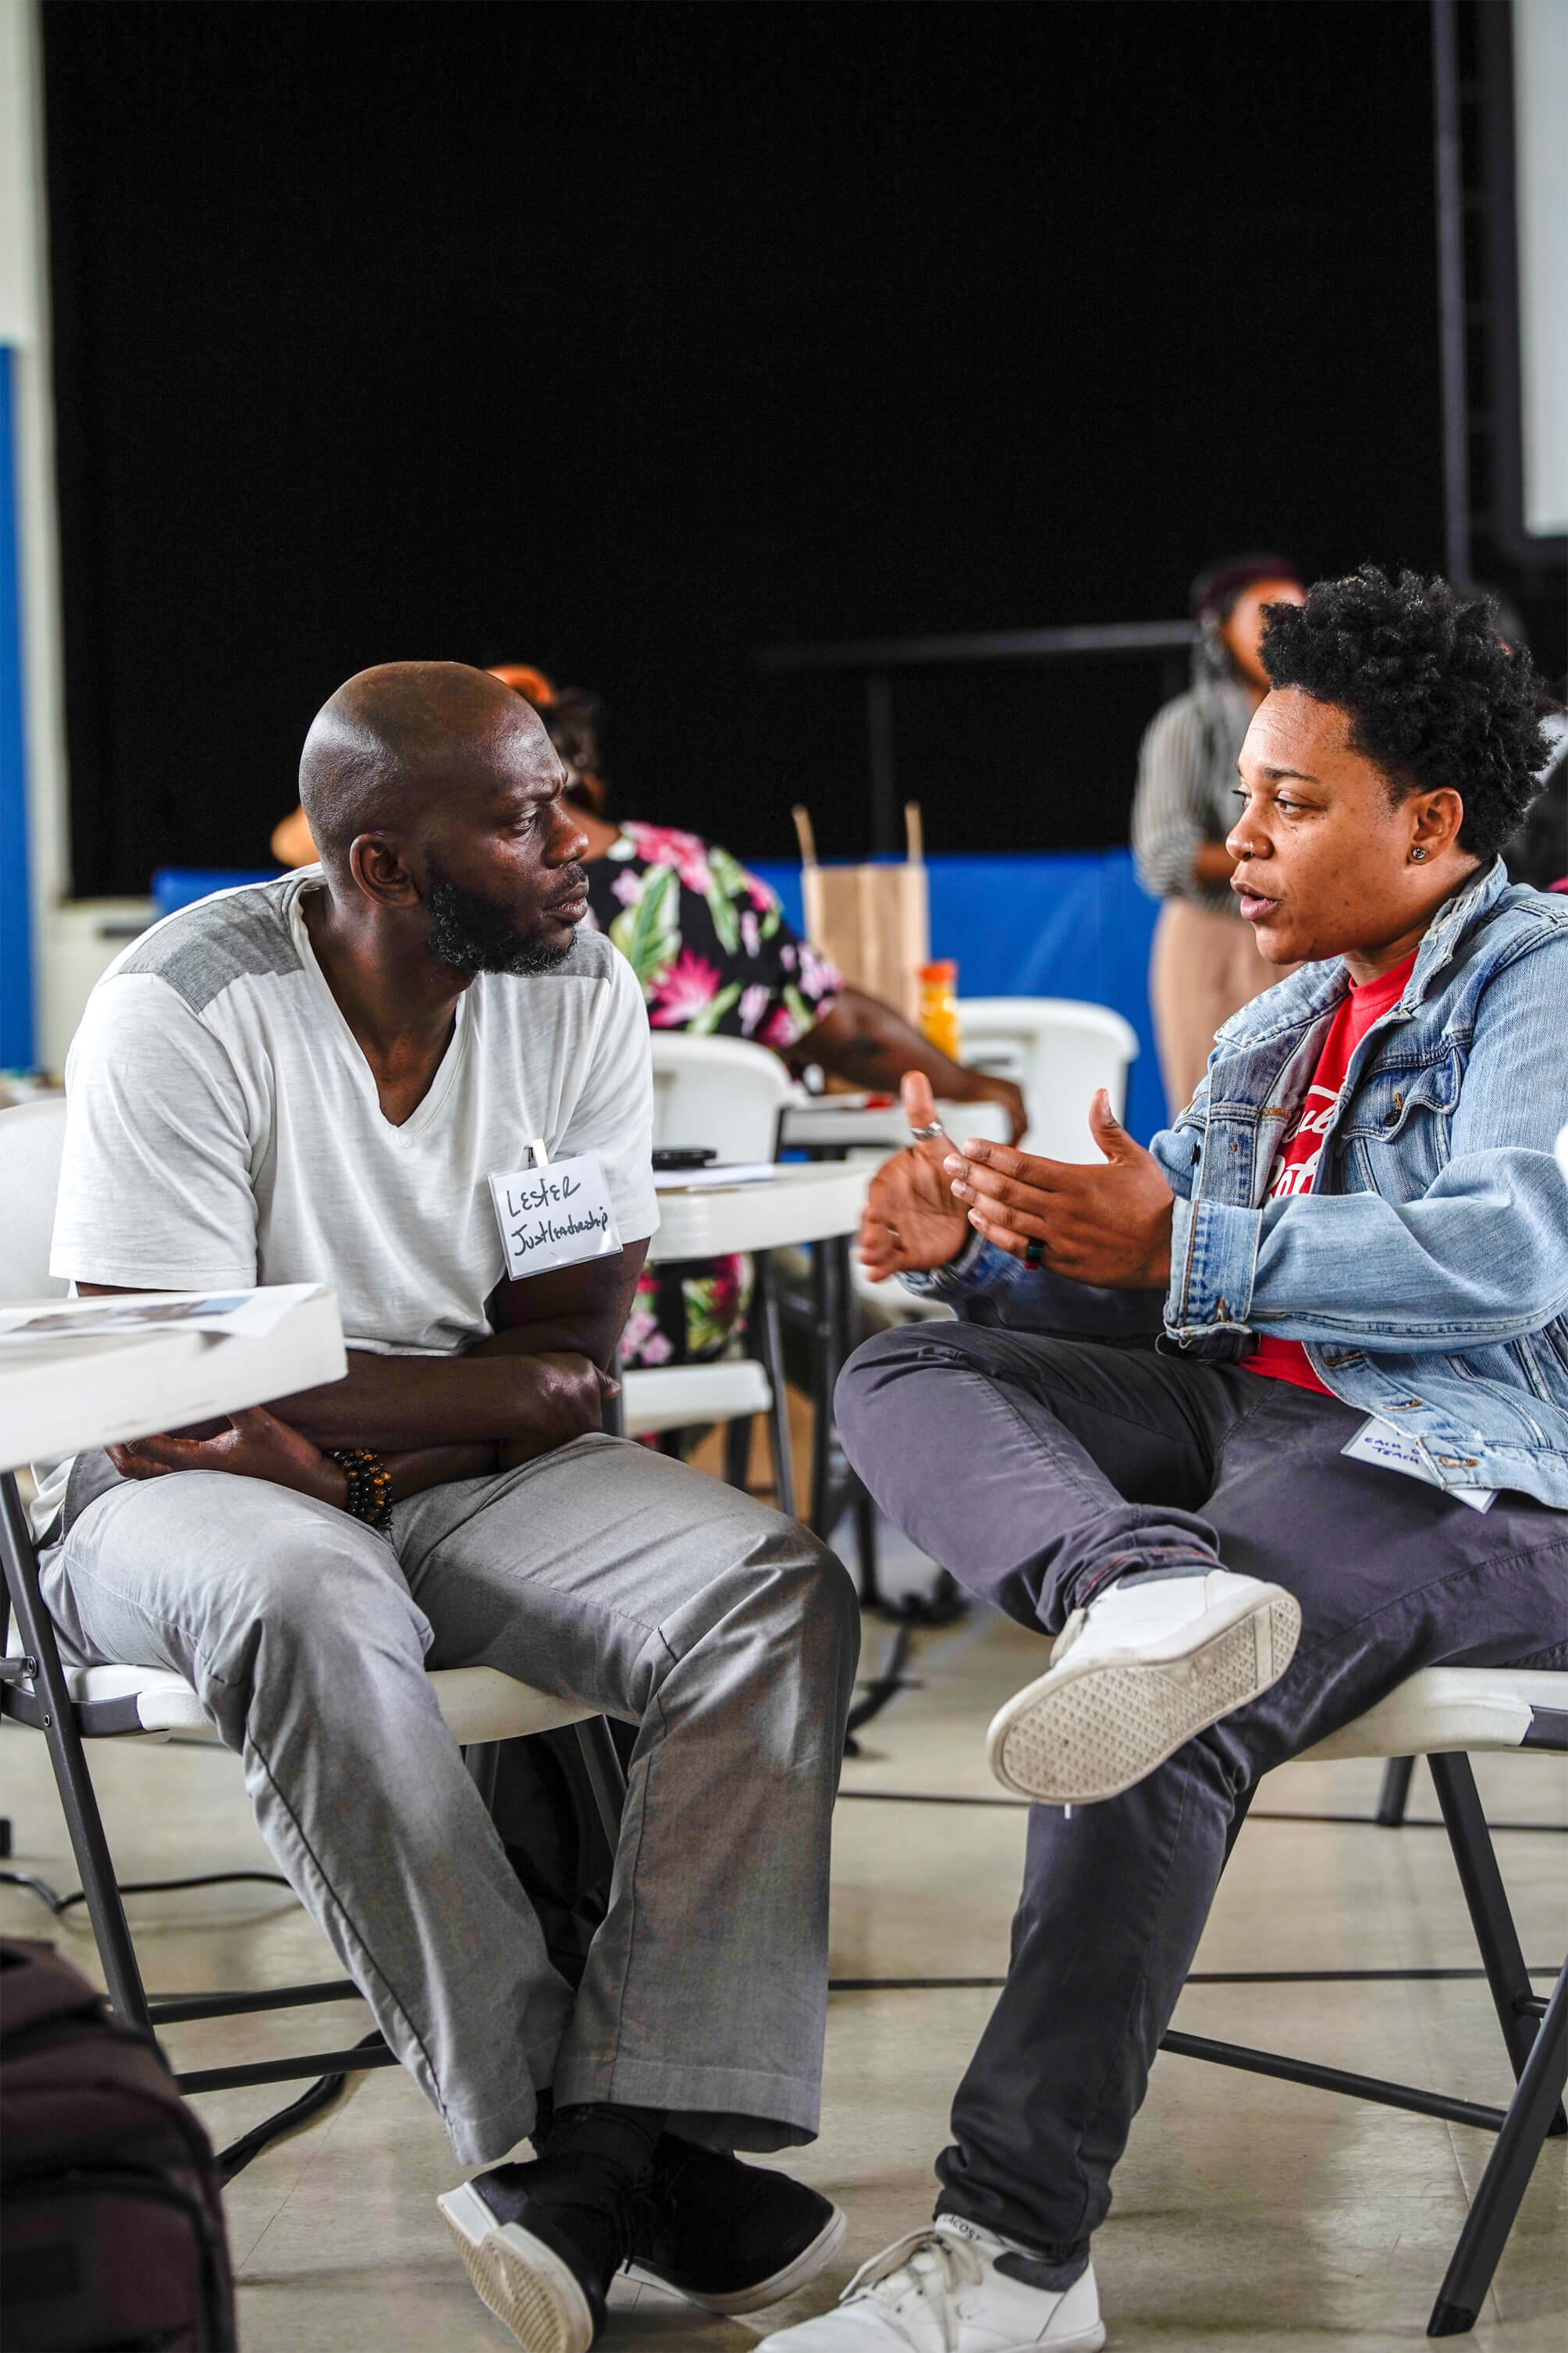 Lester Young of JustLeadershipUSA and Keturah Herron of Each One Teach One Reentry Fellowship, formerly incarcerated leaders in the criminal justice reform movement, discussing strategy during a breakout session at a technology skill-building training in New Orleans.